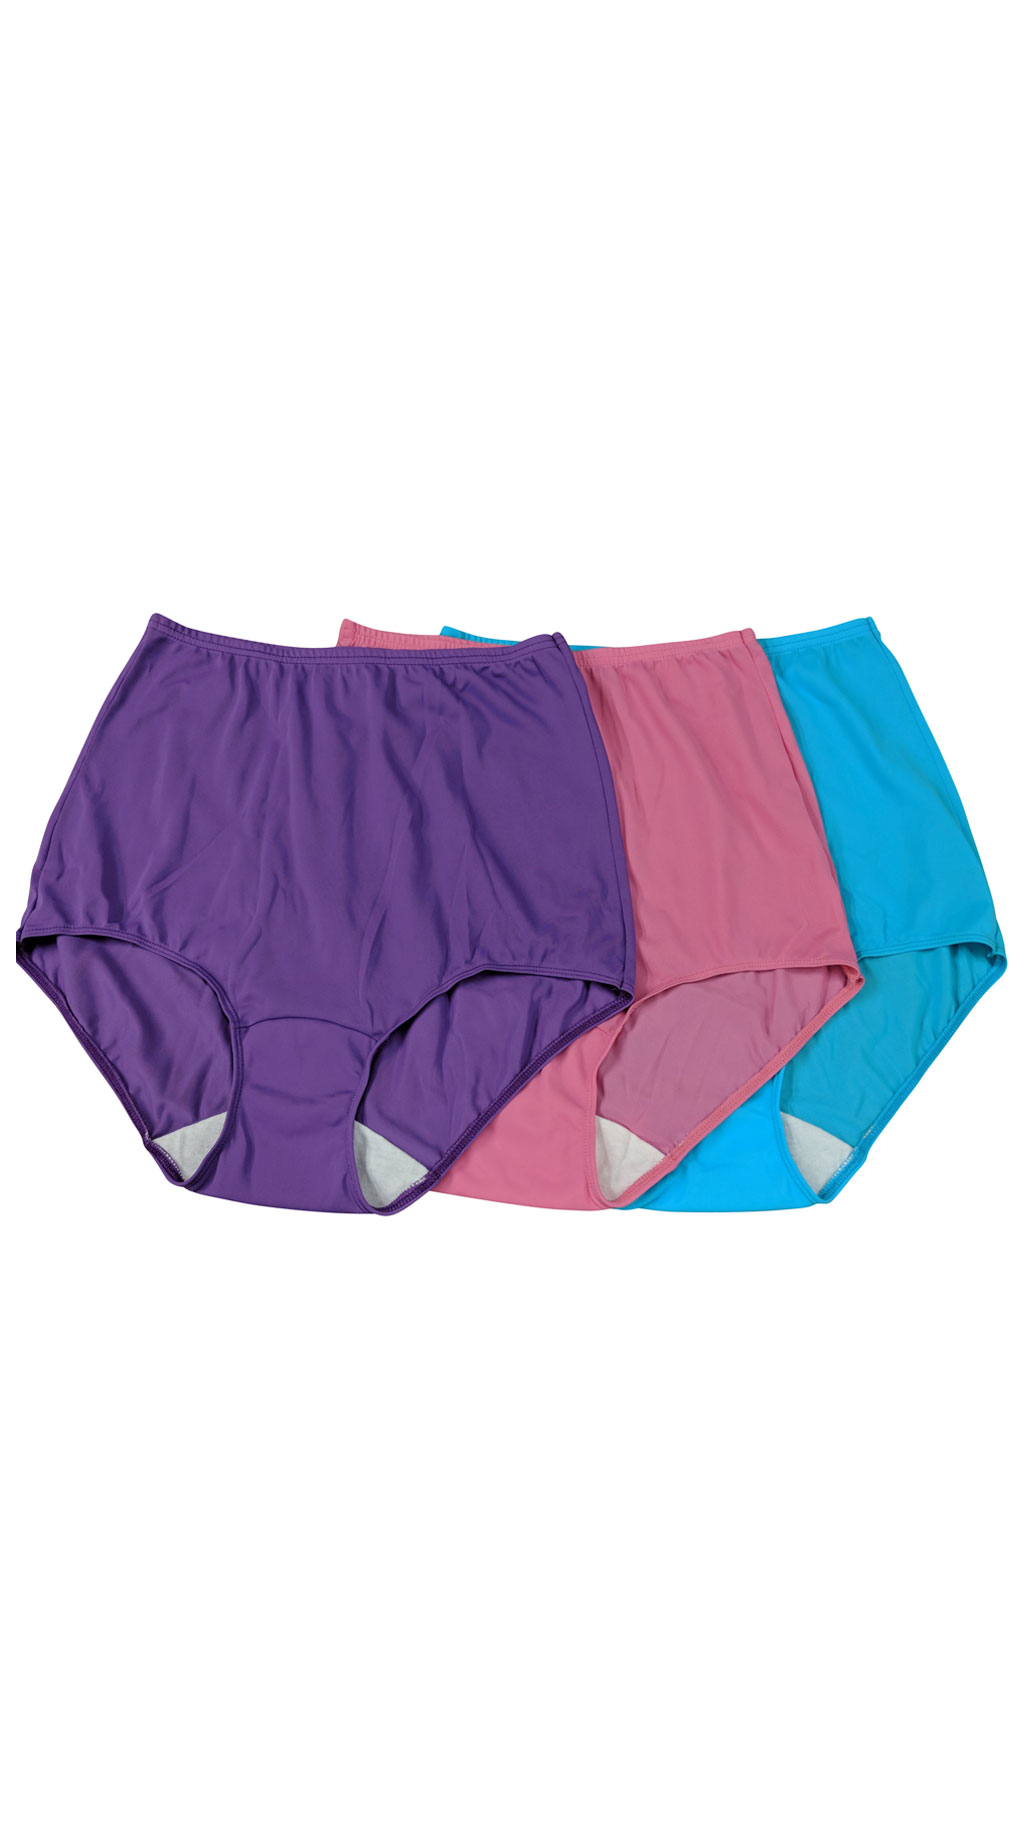 3 pack high waisted underwear